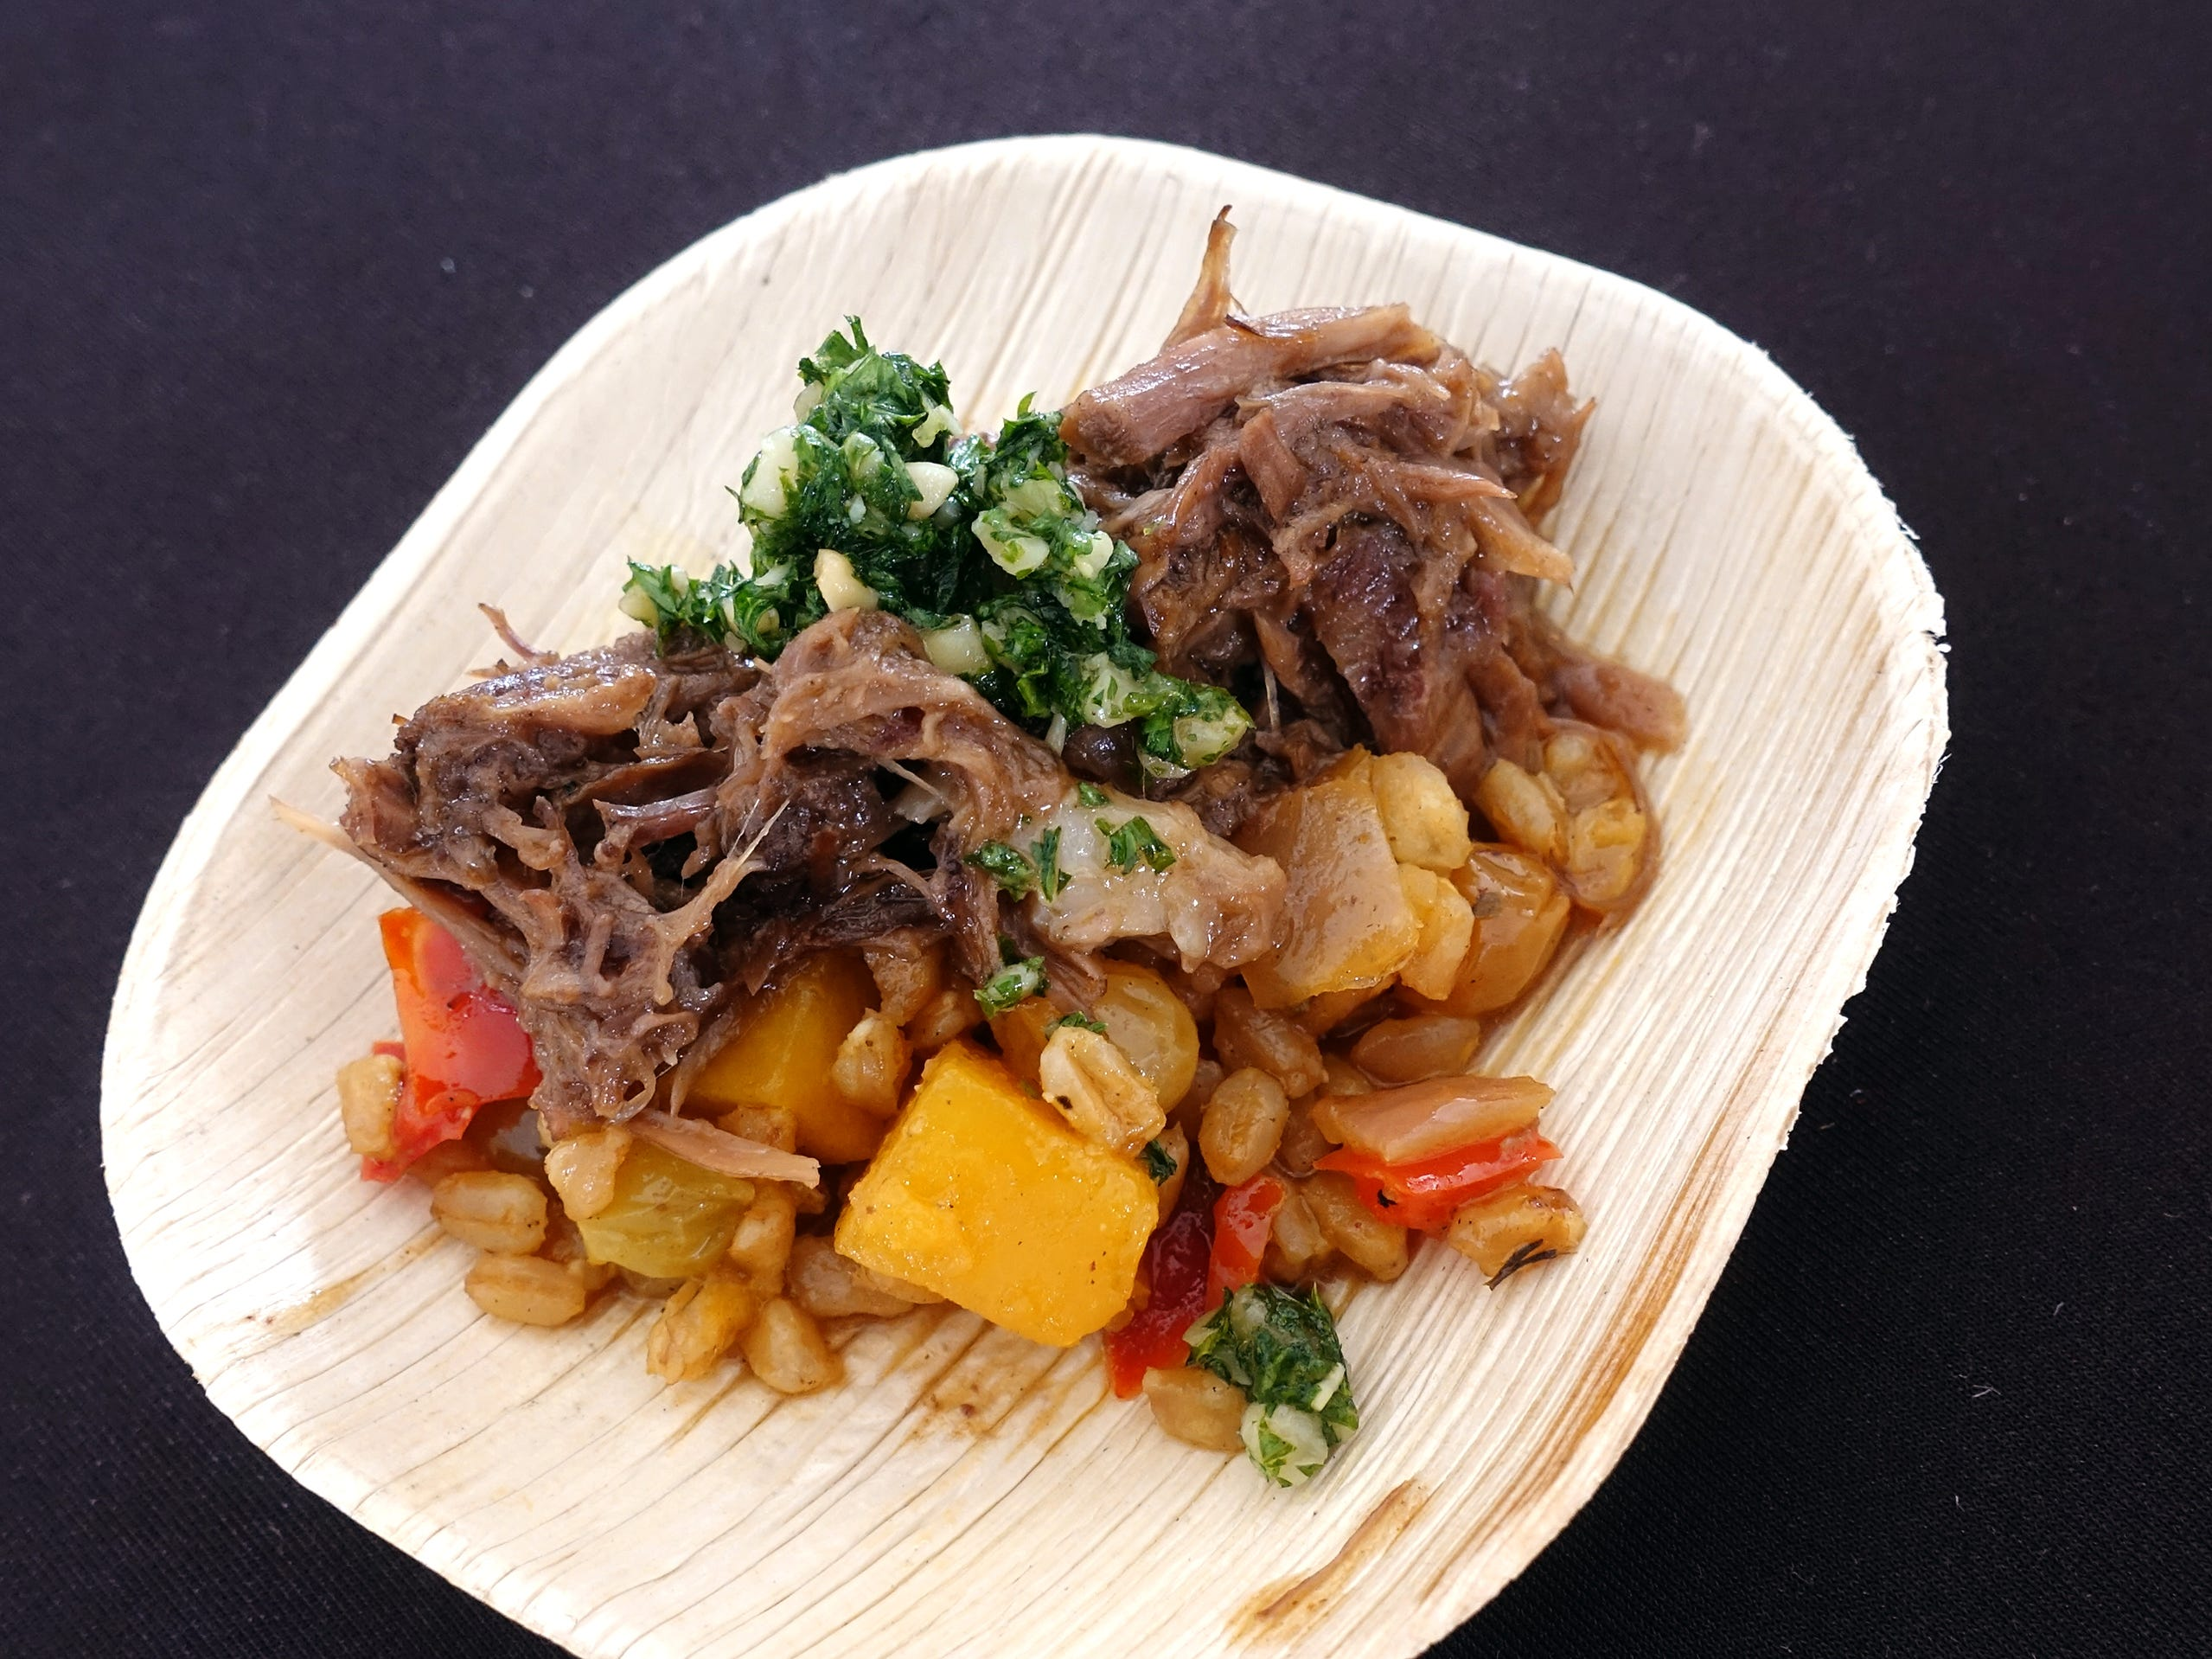 Braised lamb shank with butternut squash caponata, Tuscan farro and pine nut gremolata from The Boulders at azcentral Wine & Food Experience 2018 at WestWorld of Scottsdale, Sunday, Nov. 4, 2018.